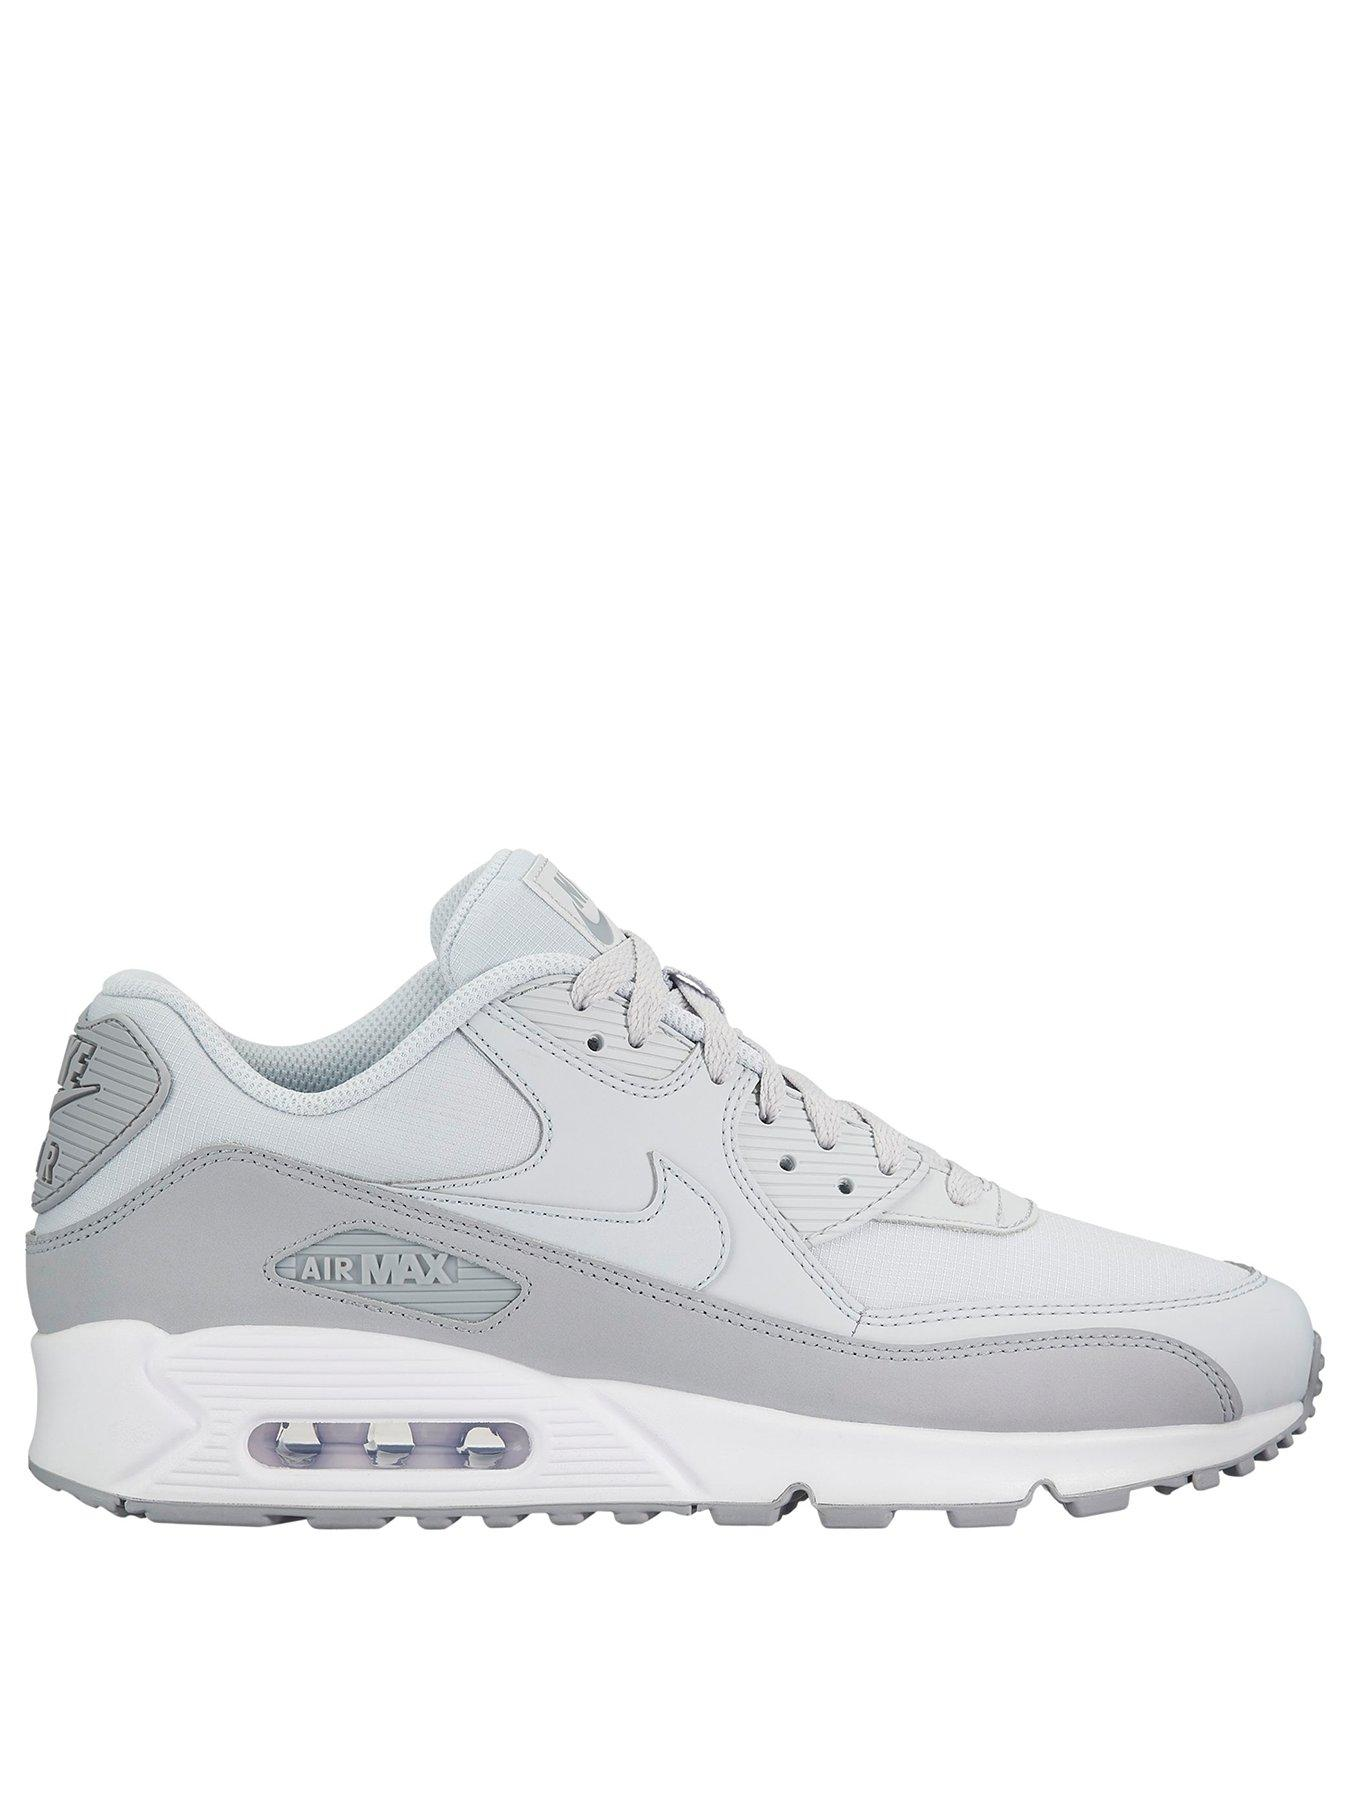 Nike Air Max 90 | Mens sports shoes | Sports u0026 leisure | Nike